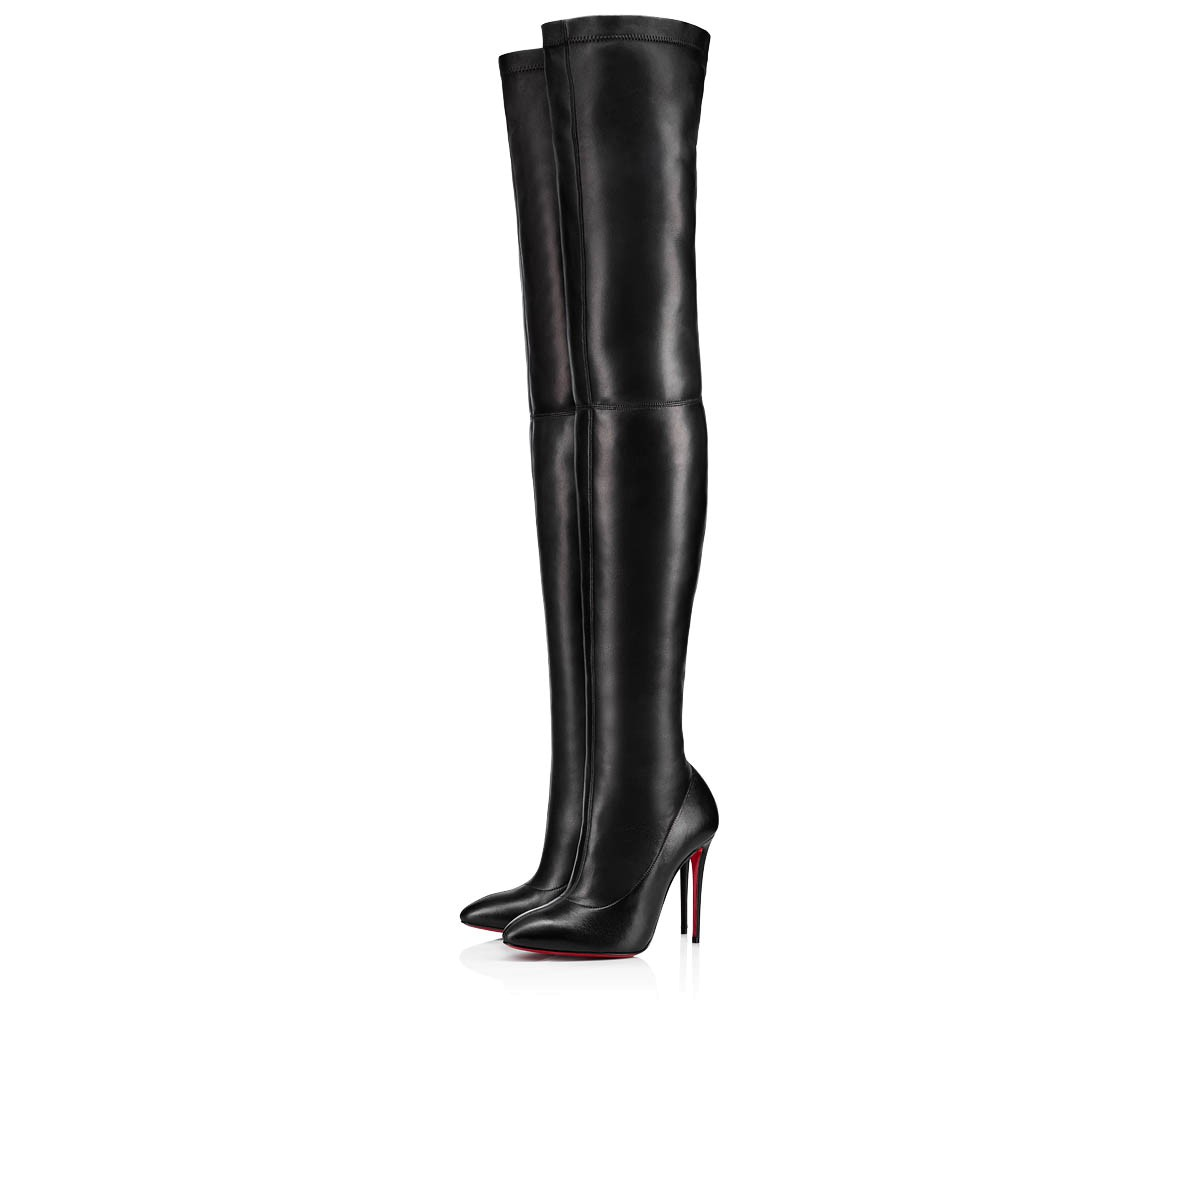 cuissardes louboutin